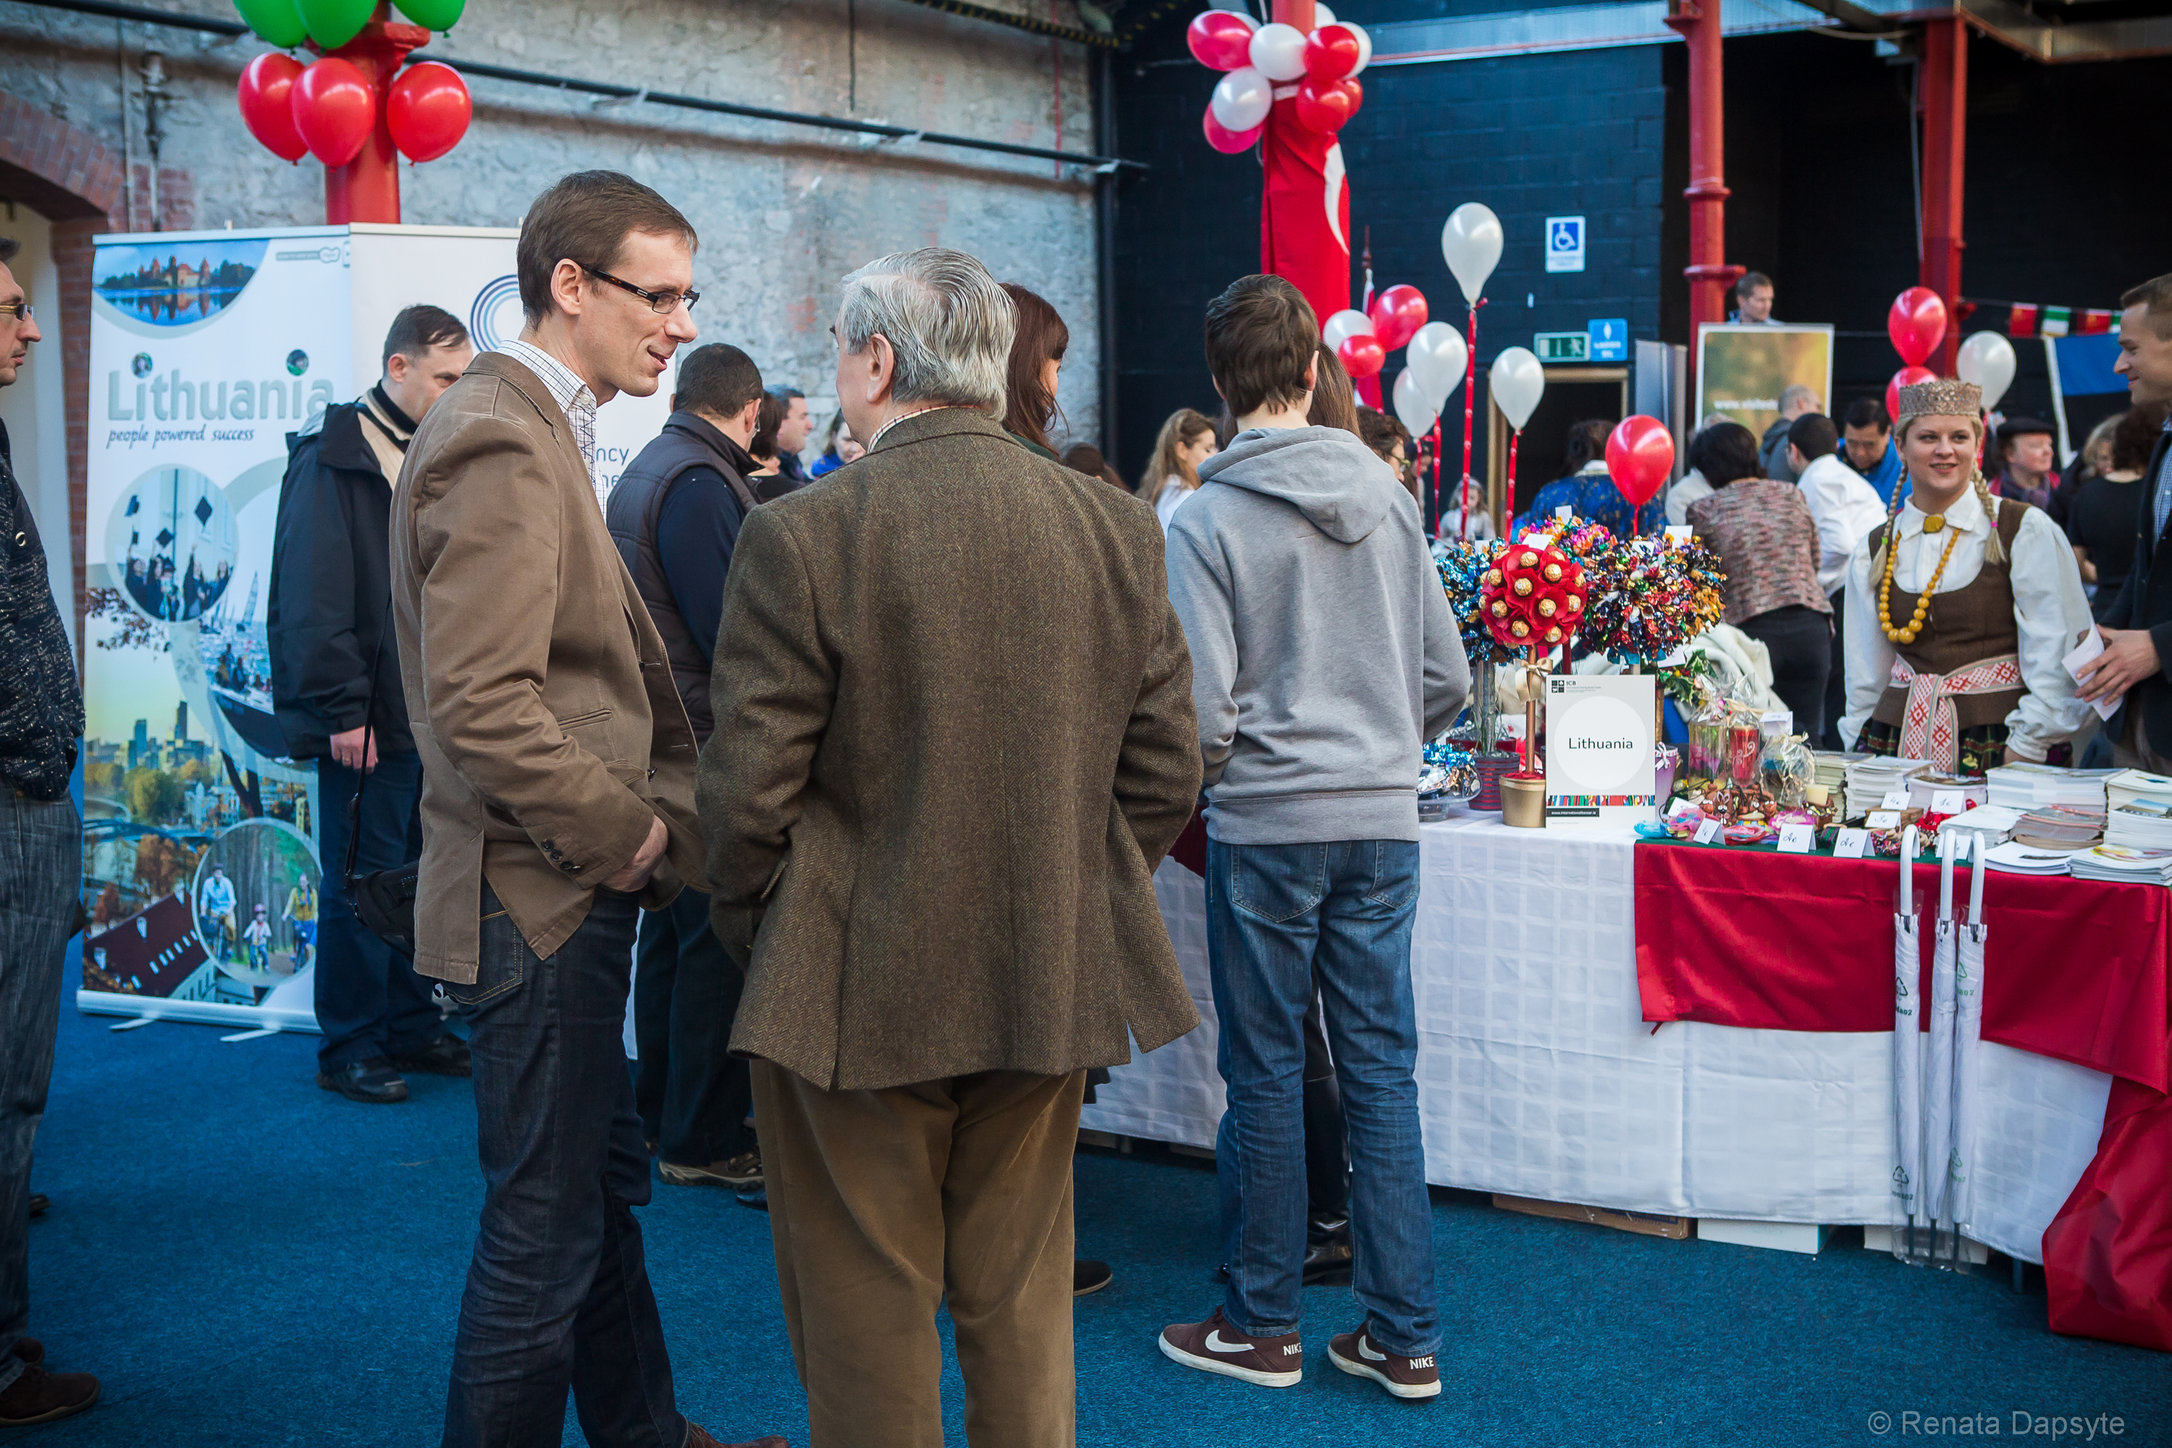 009_International Charity Bazaar Dublin 2013.JPG